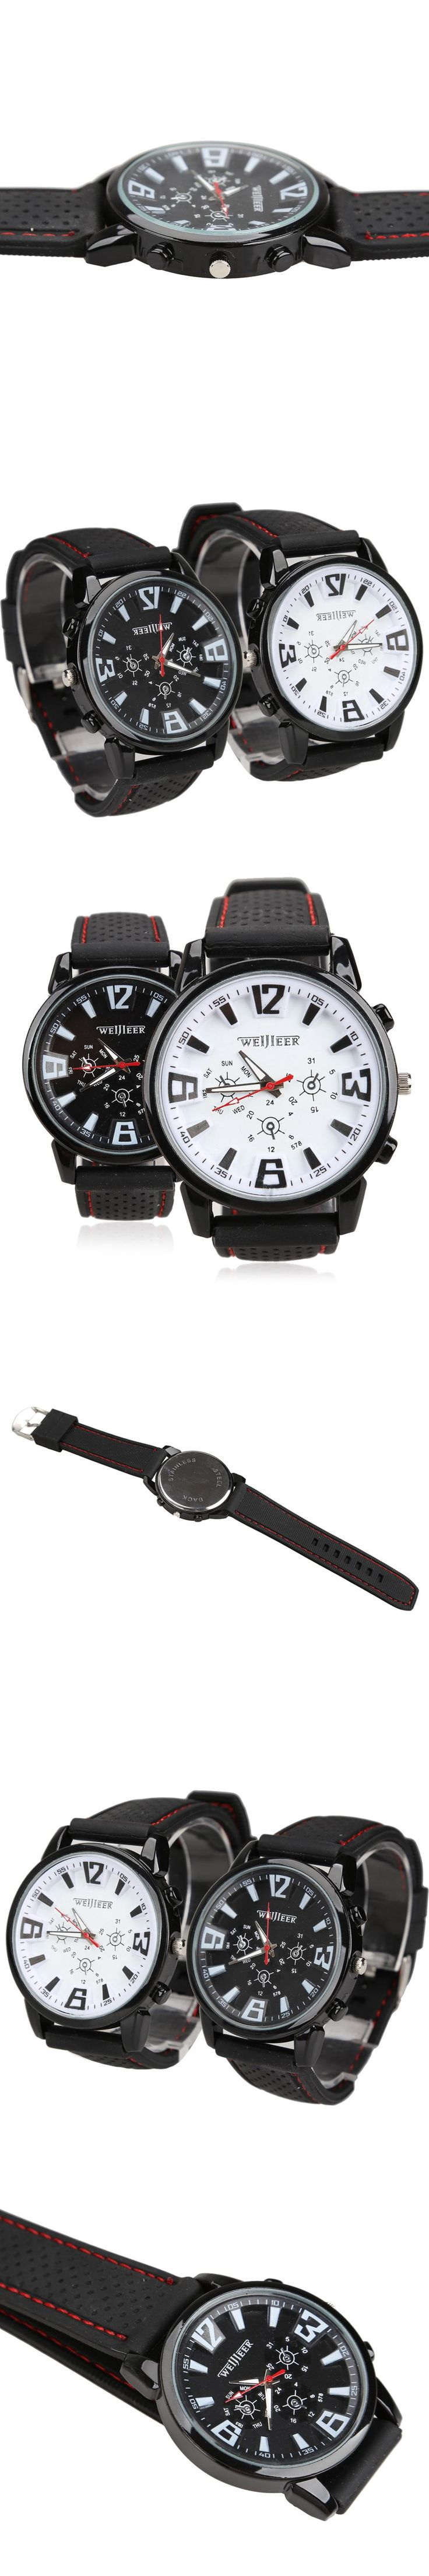 auto primo watches eco drive edition citizen prnewsfoto inc watch company mens america racing kenseth matt of limited casio